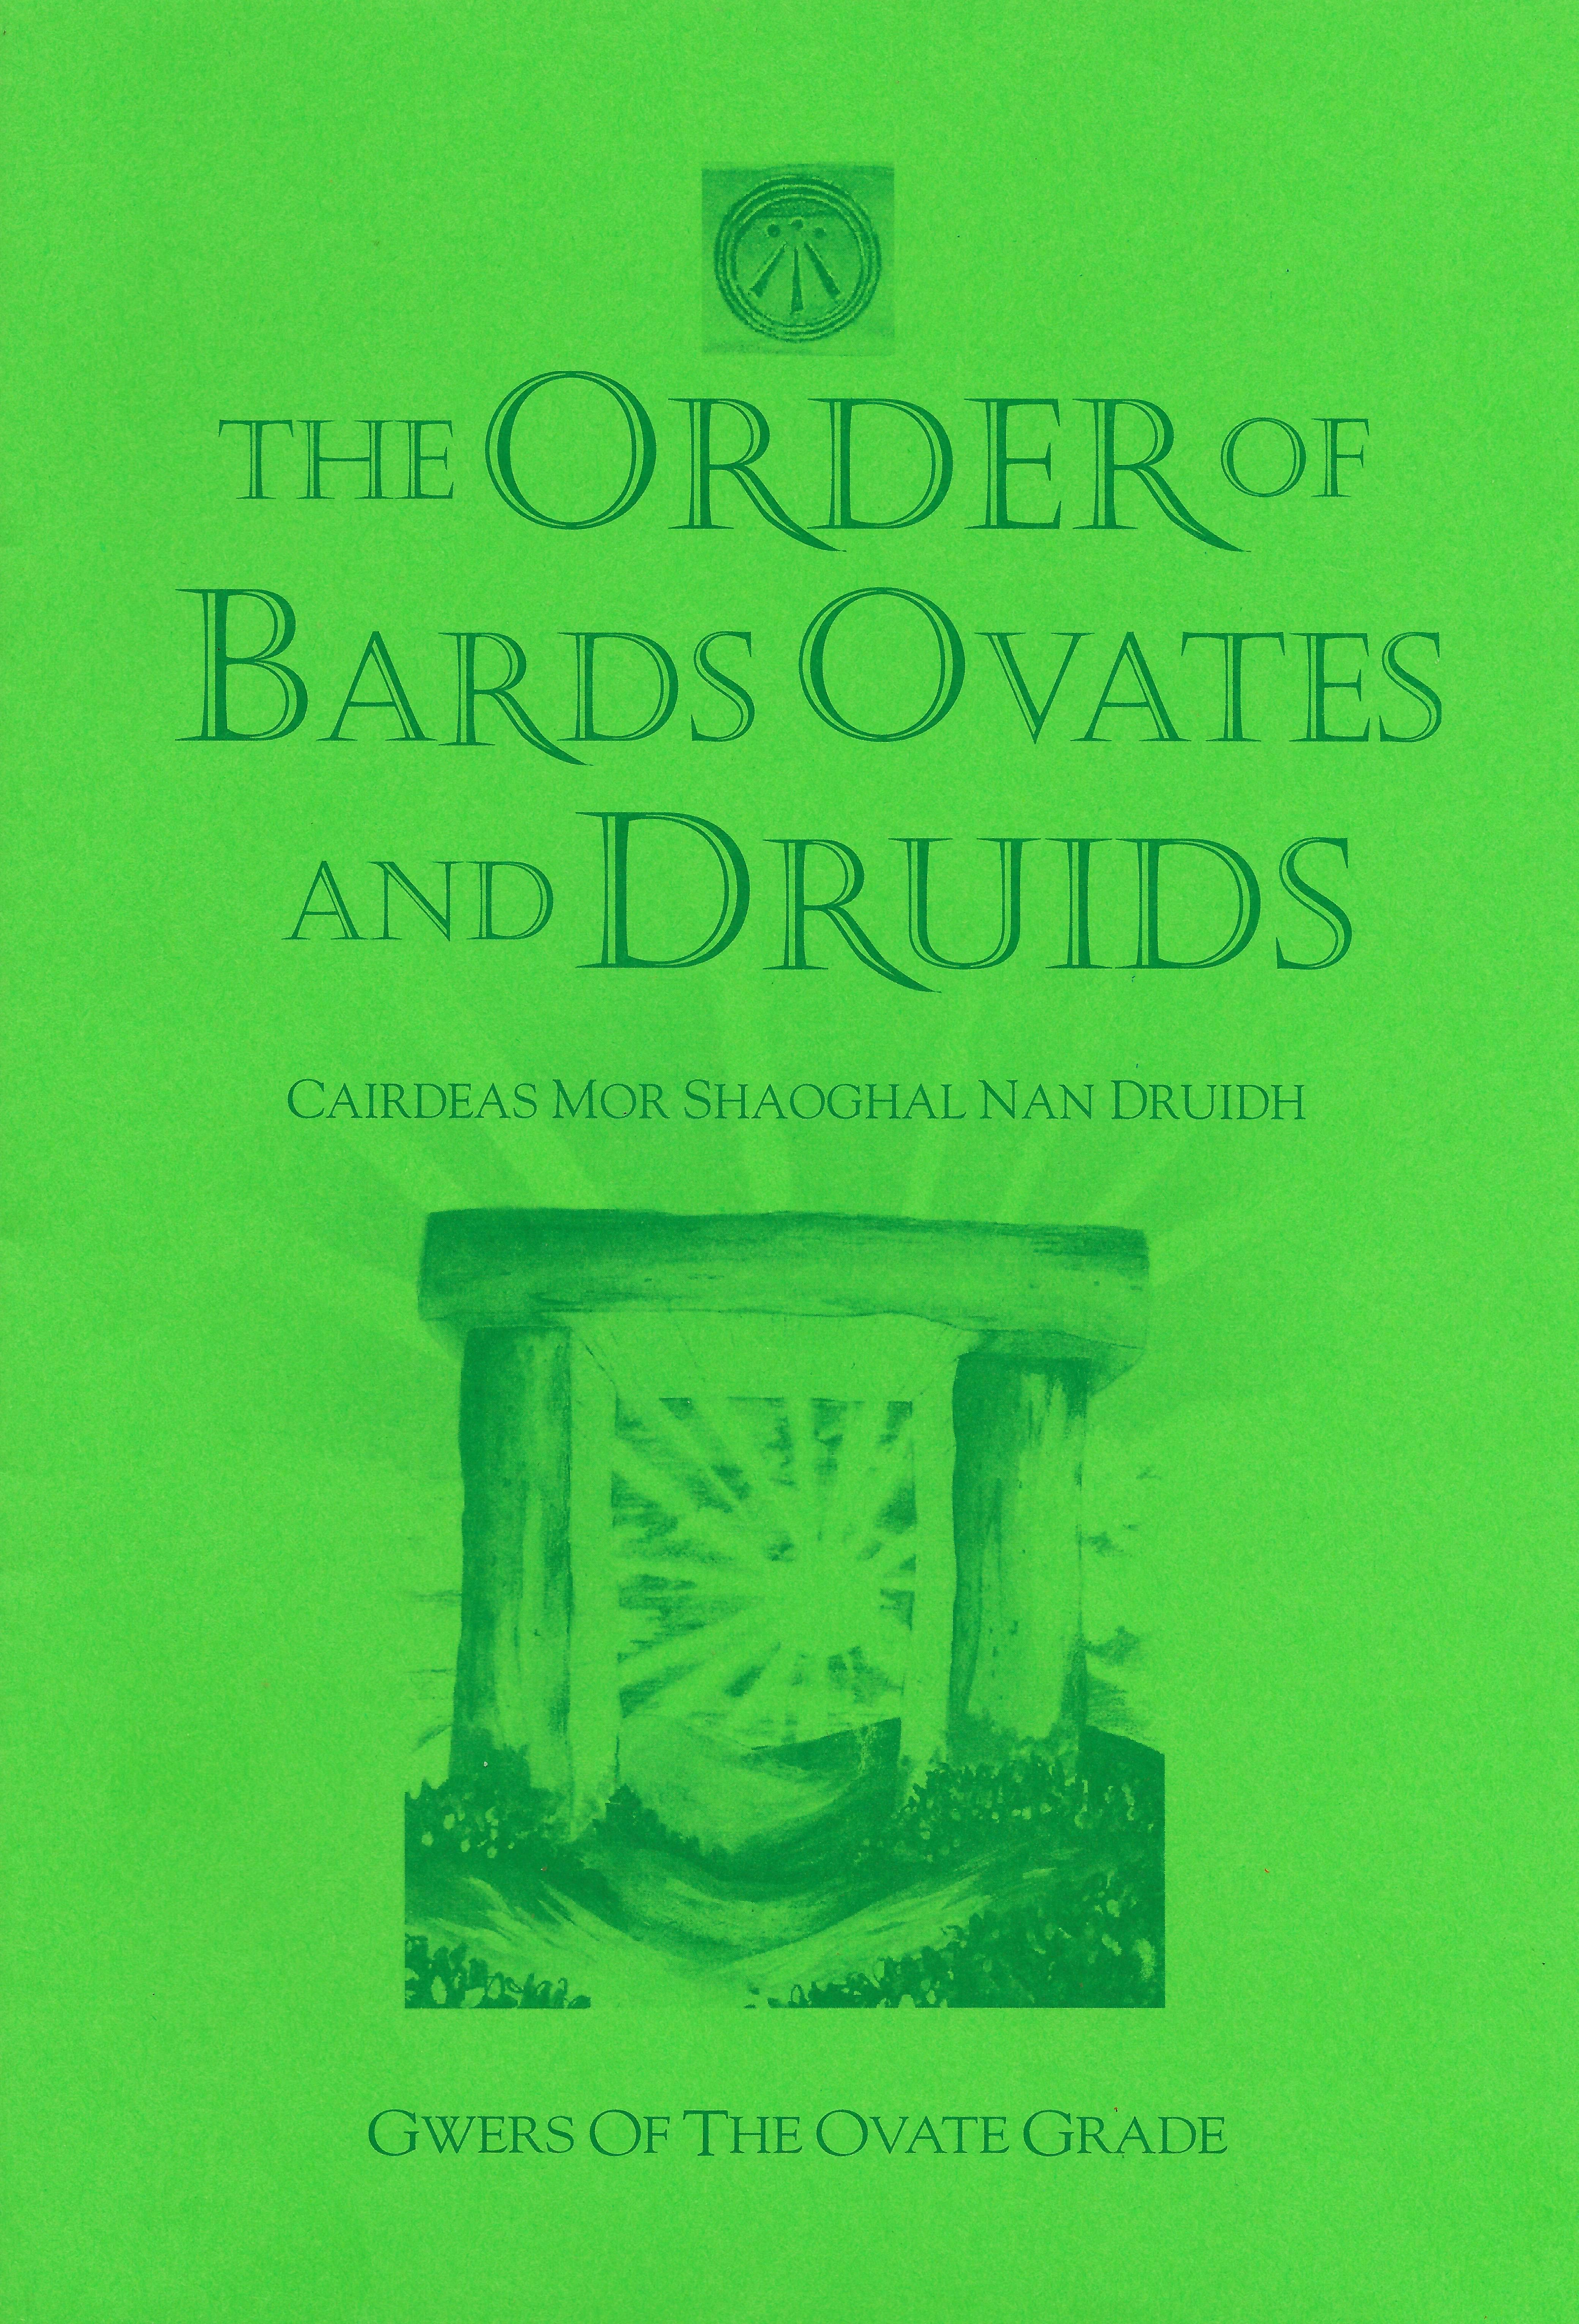 Gwers 33 - Ovate grade  by  The Order of Bards, Ovates and Druids